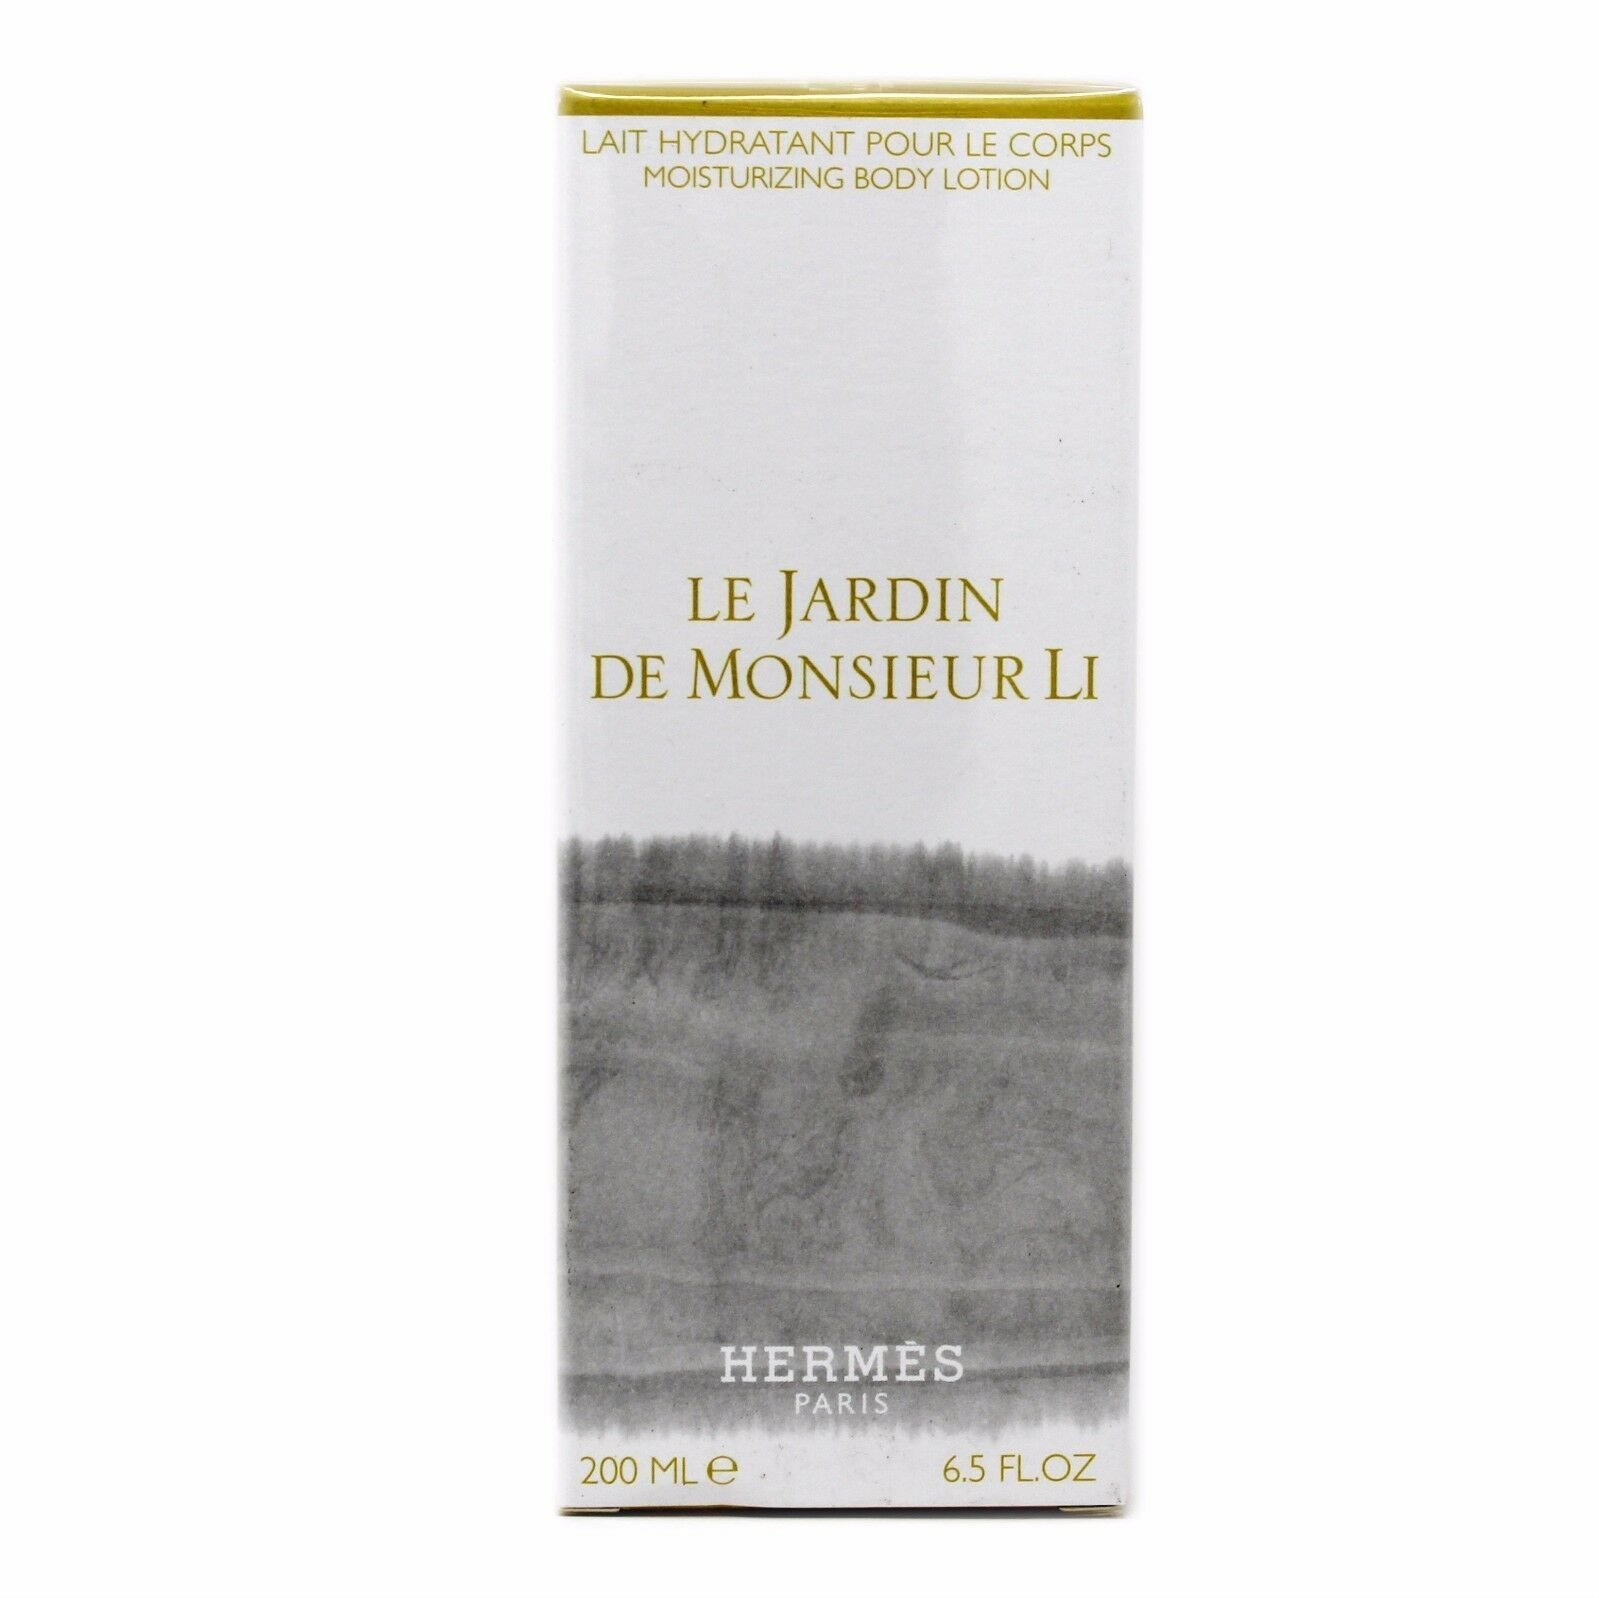 HERMES LE JARDIN DE MONSIEUR LI MOISTURIZING BODY LOTION 200 ML/6.5 OZ NIB-32123